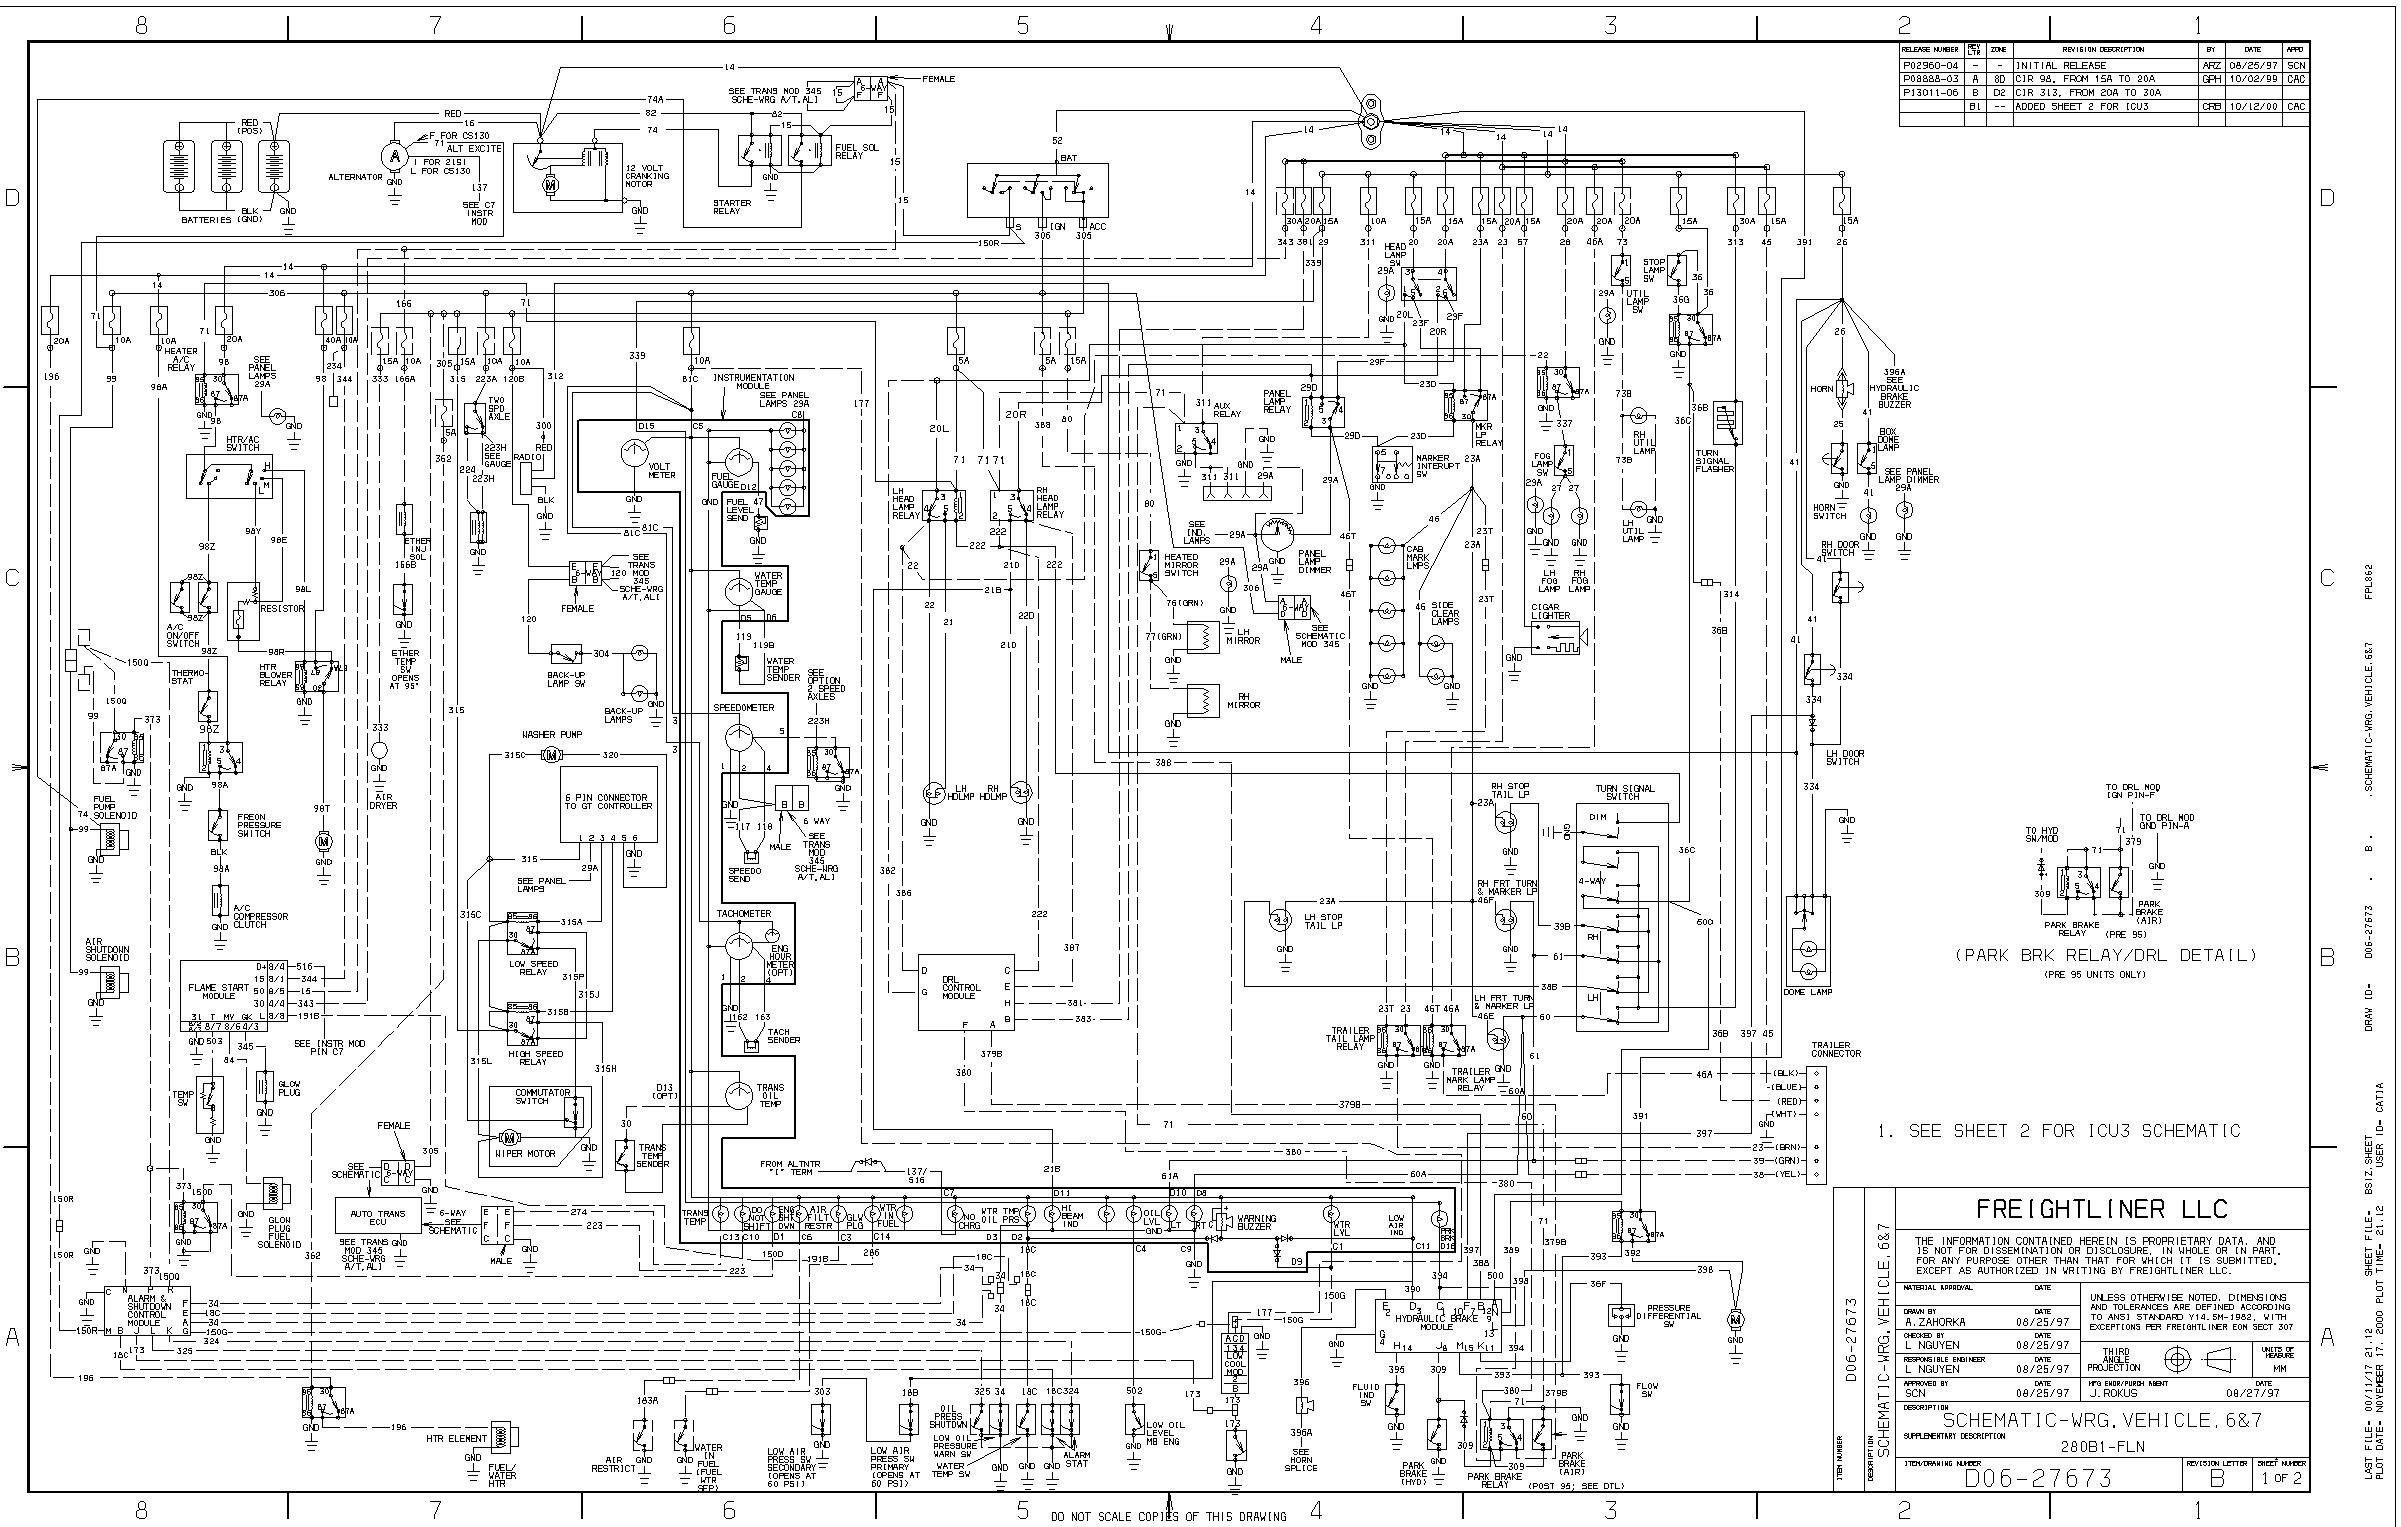 1997 chevy astro wiring schematic pin on eassy wiring diagram  pin on eassy wiring diagram